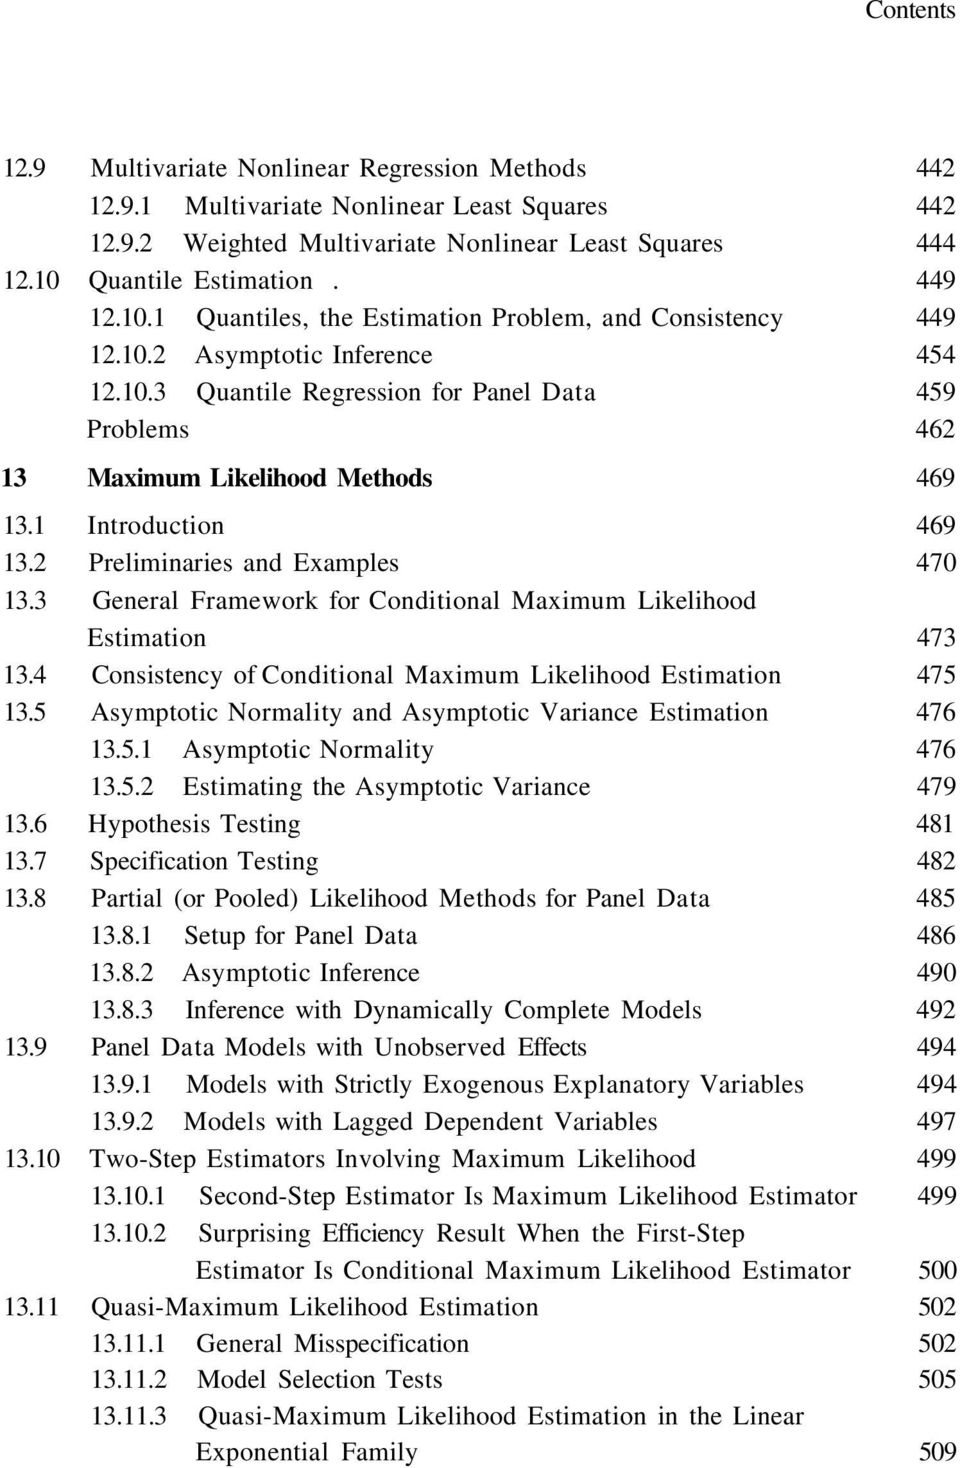 1 Introduction 469 13.2 Preliminaries and Examples 470 13.3 General Framework for Conditional Maximum Likelihood Estimation 473 13.4 Consistency of Conditional Maximum Likelihood Estimation 475 13.